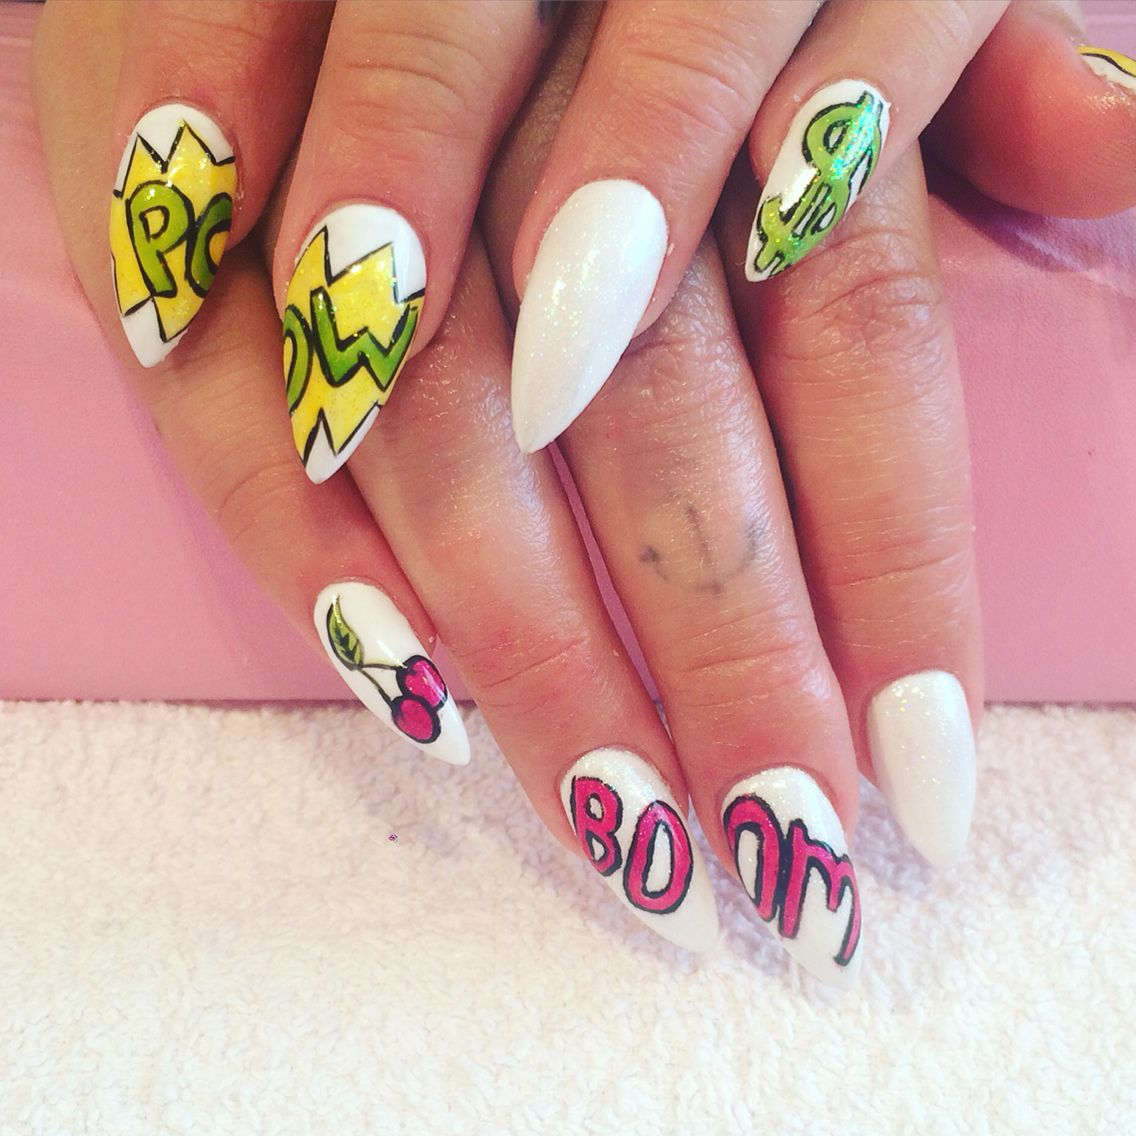 Hand Painted Nail Art Designs: Hand Painted Pop Art Nails Done At California Nails